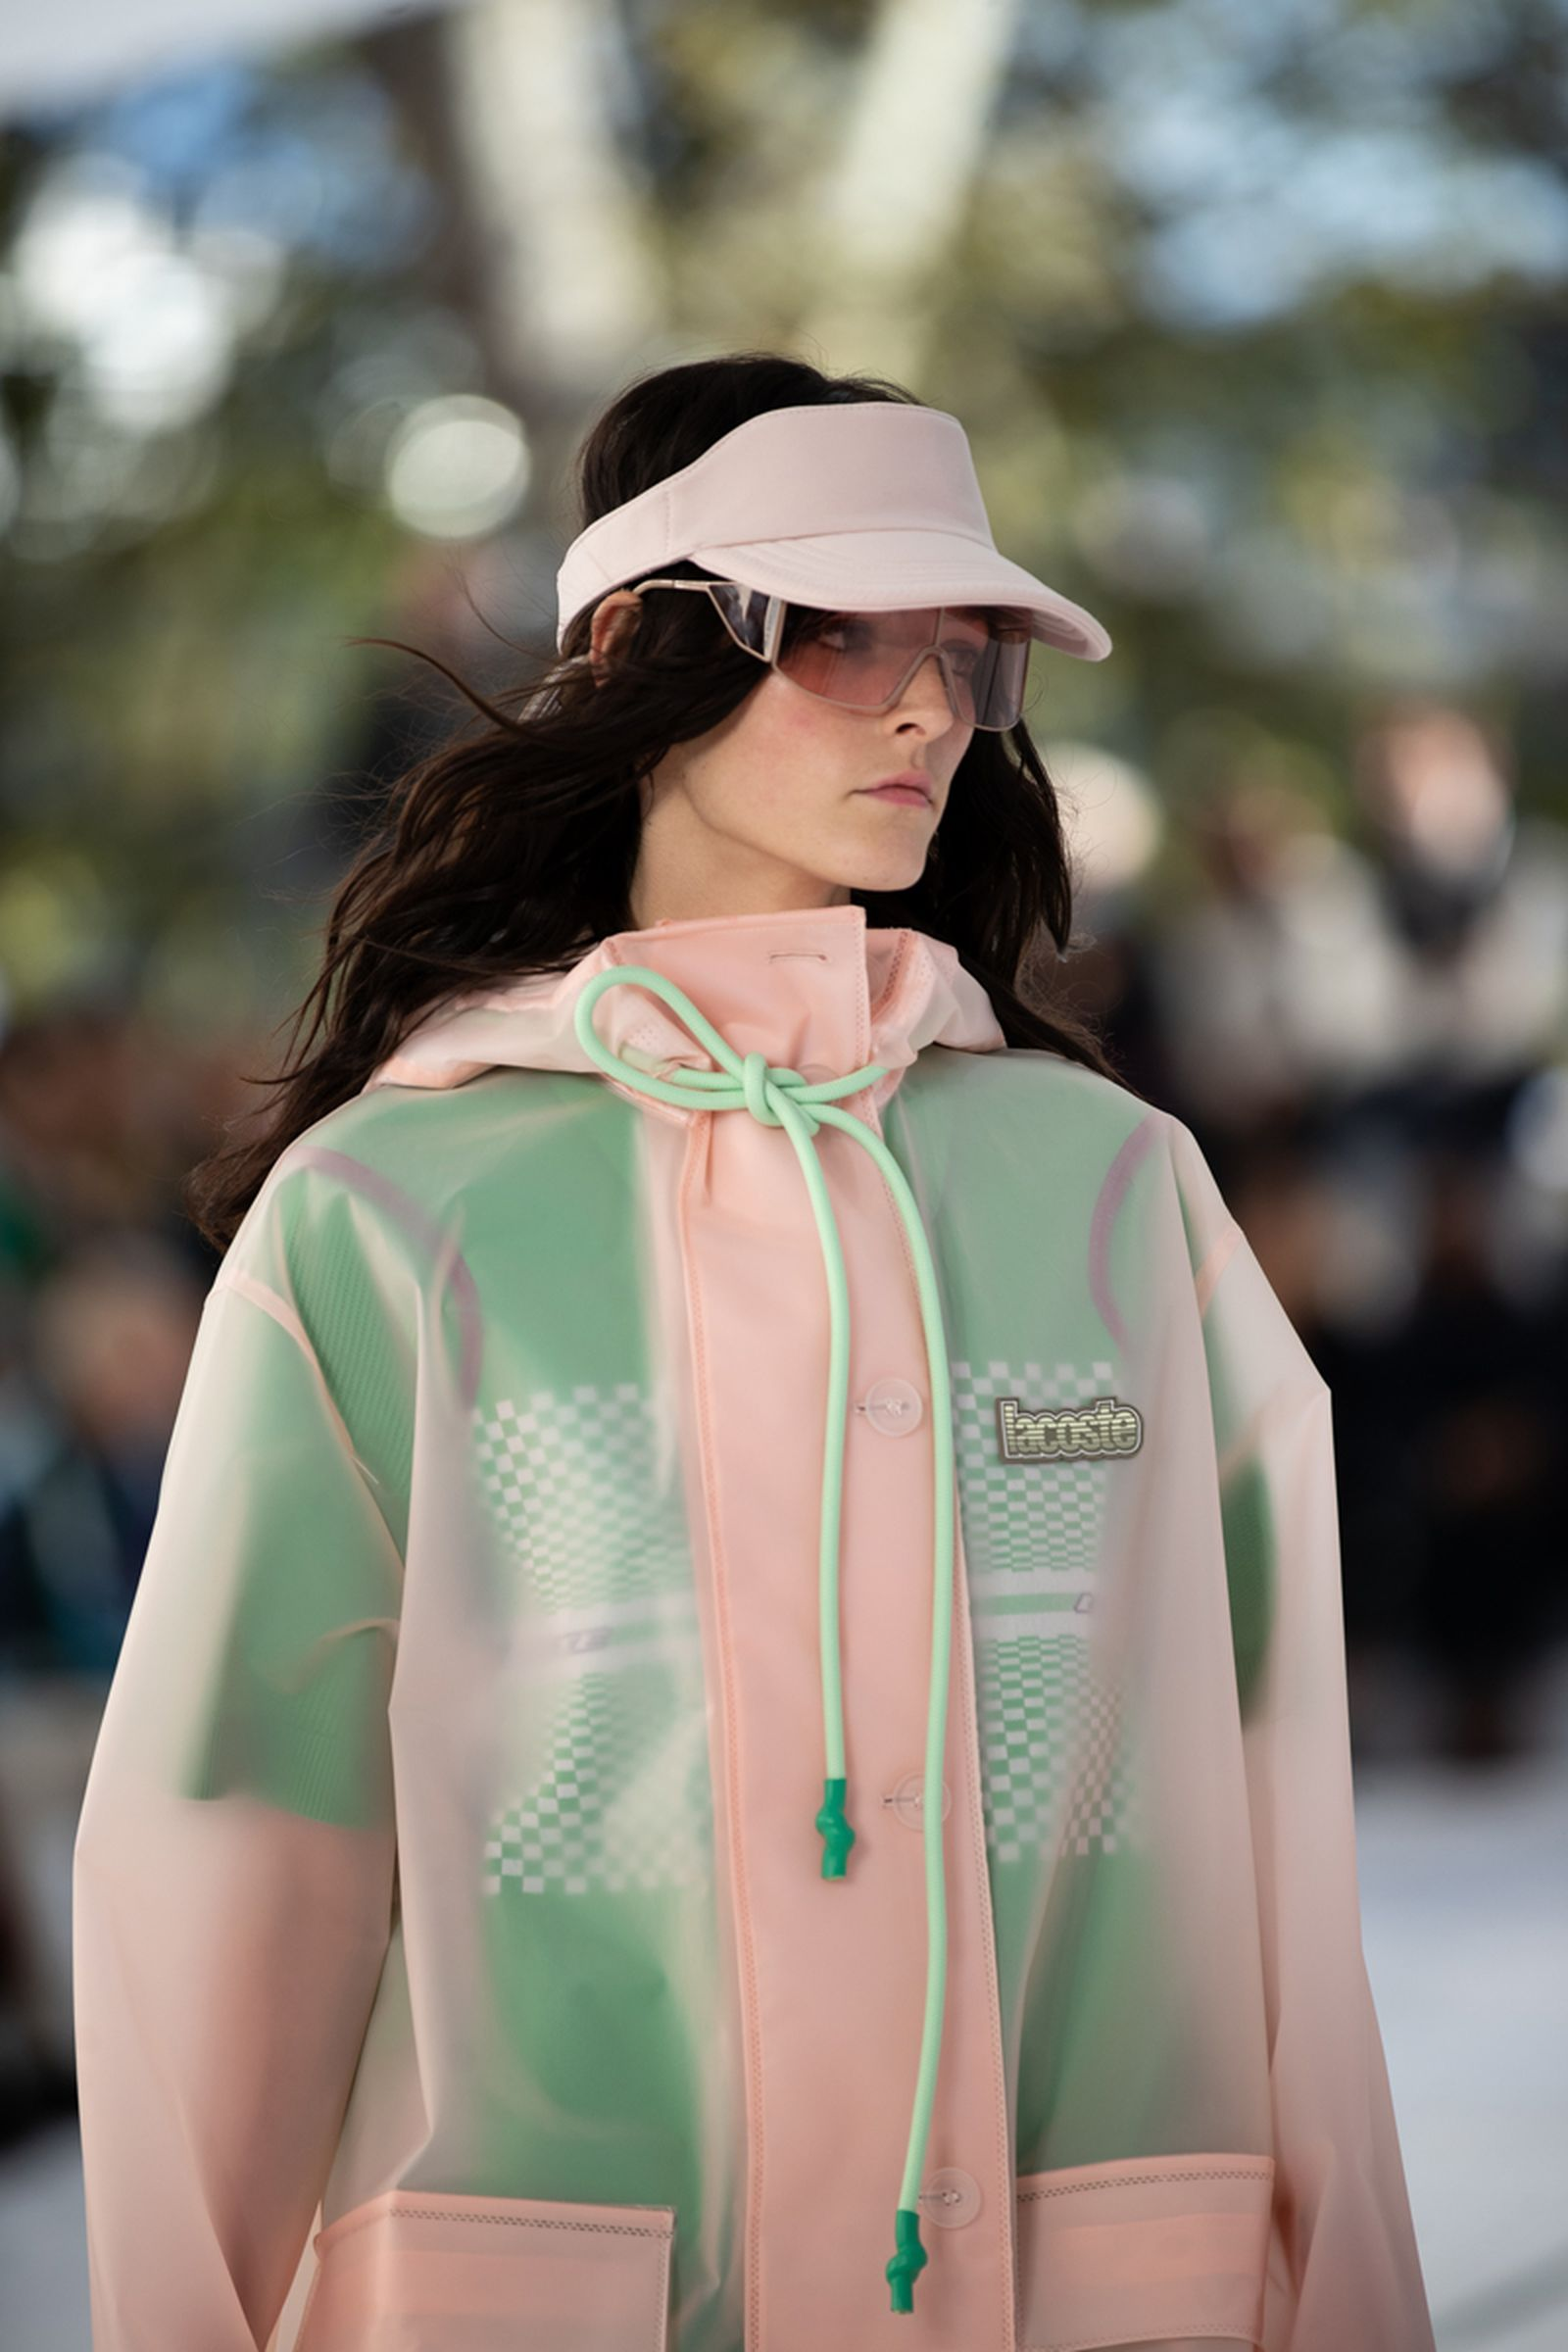 lacoste-spring-summer-2022-collection (3)